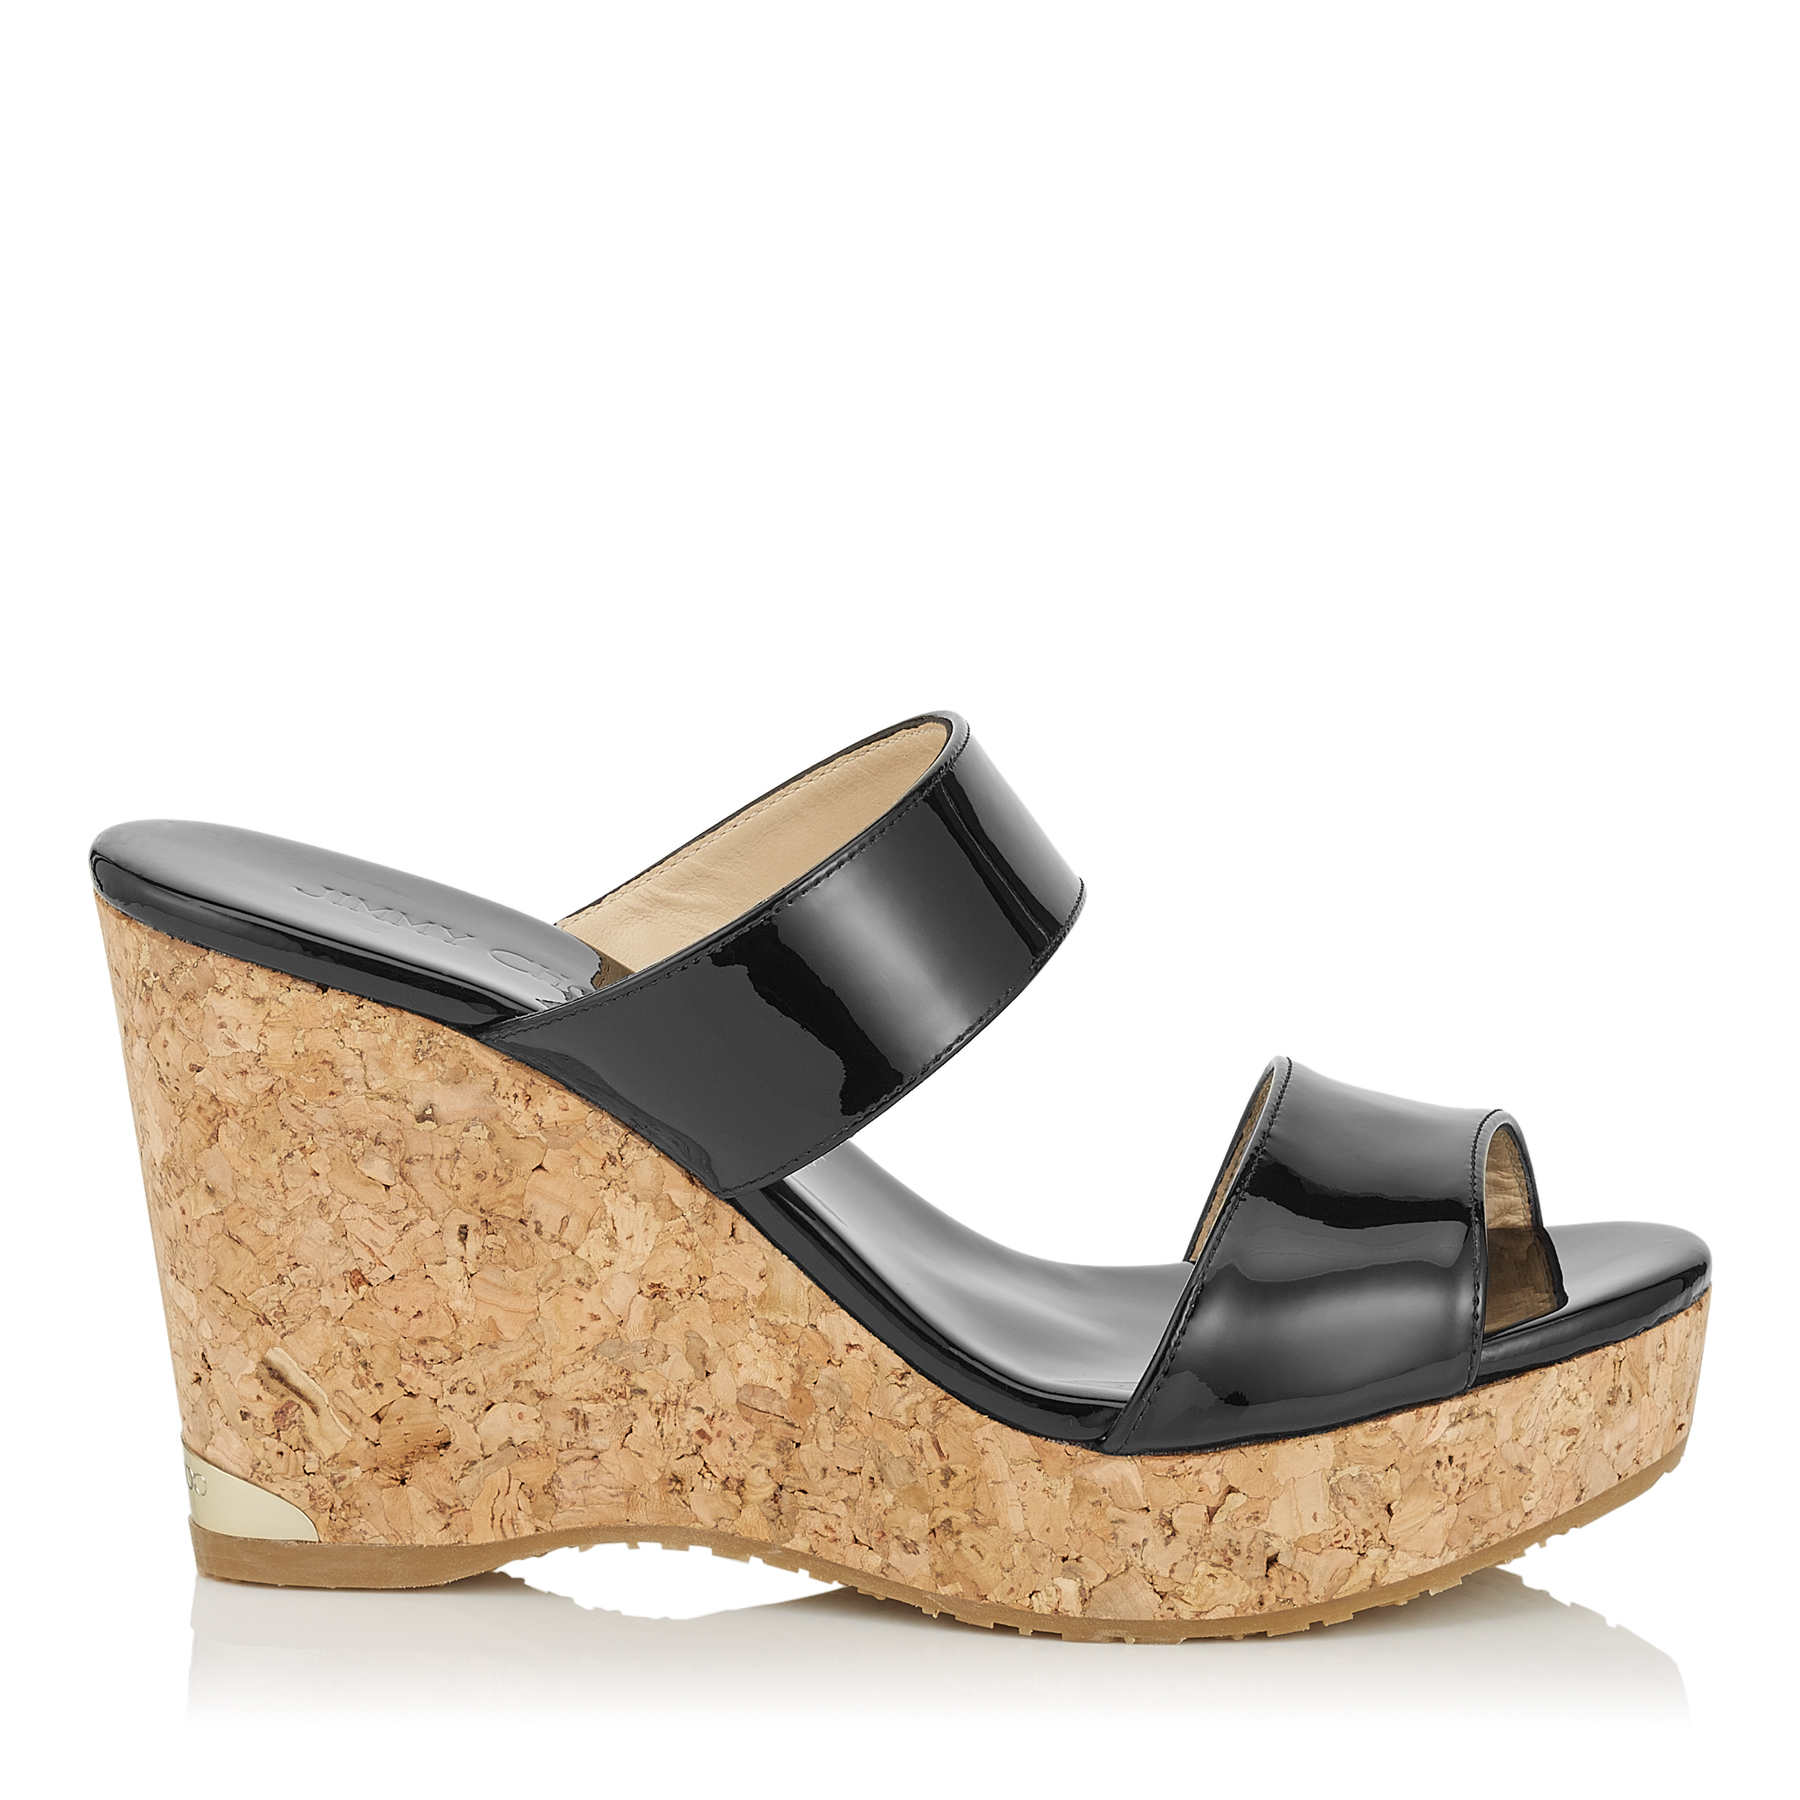 PARKER 100 Black Patent Cork Wedges by Jimmy Choo